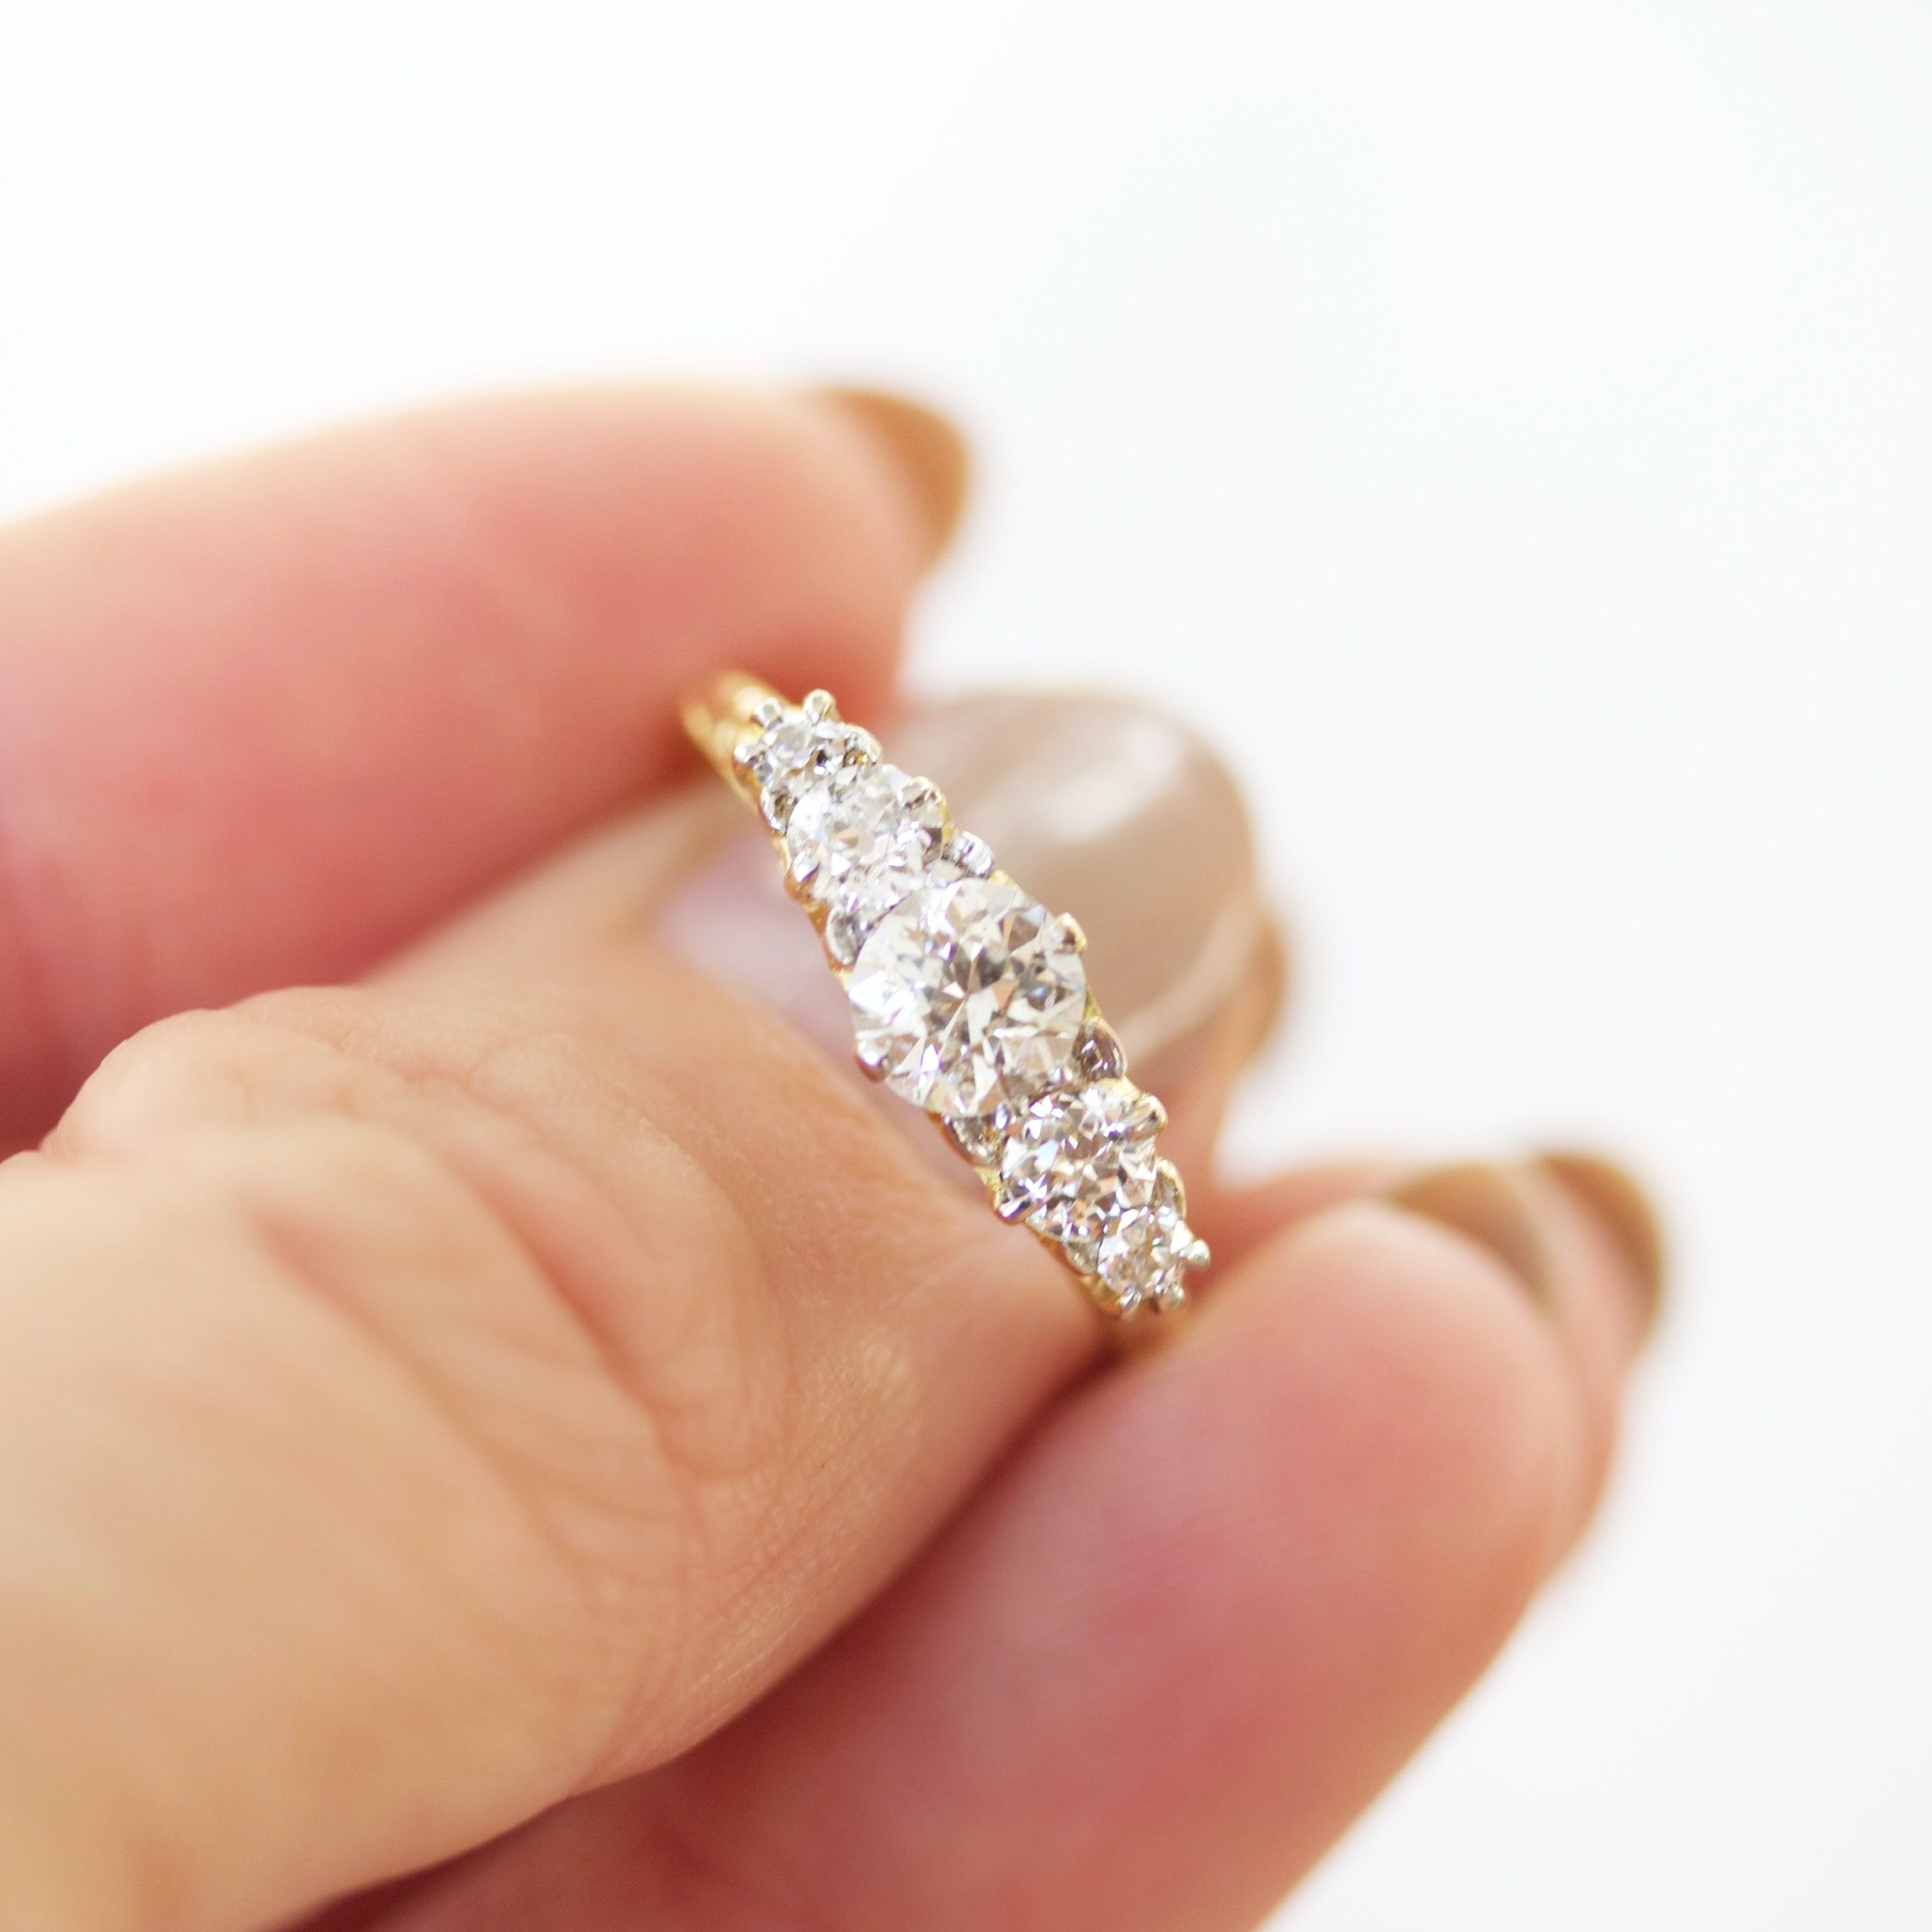 Annette In 2018 | Wedding Things | Pinterest | Engagement, Stone And Throughout Newest Lab Created Ruby Five Stone Anniversary Bands (View 14 of 15)